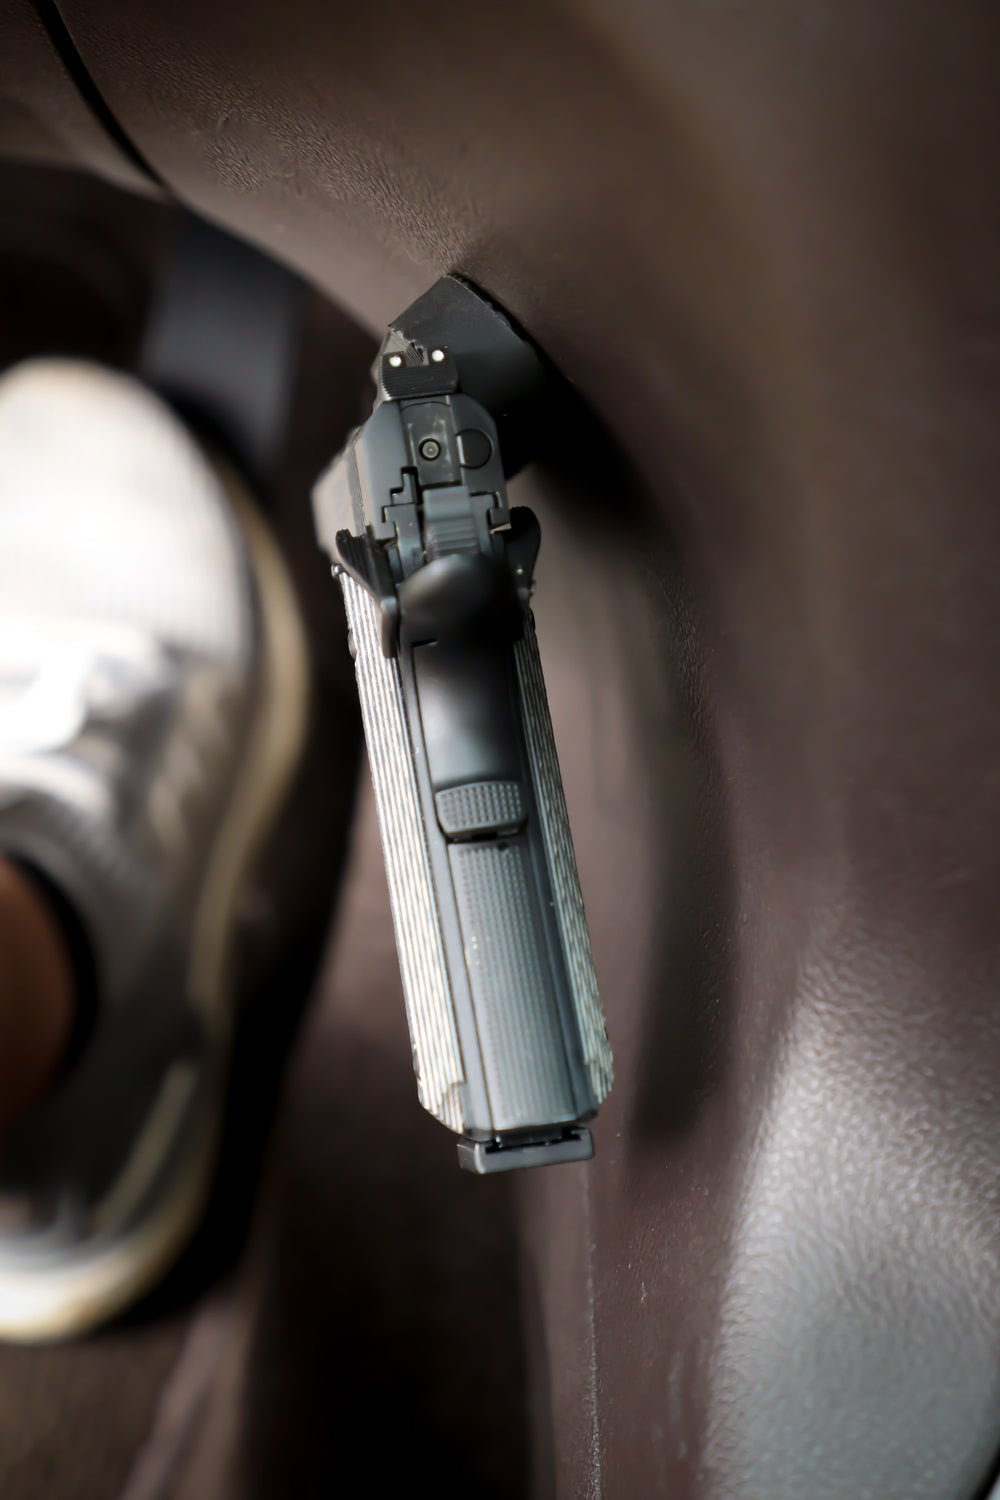 Picture of a Semi Automatic pistol from behind mounted on the side of the console of a vehicle.